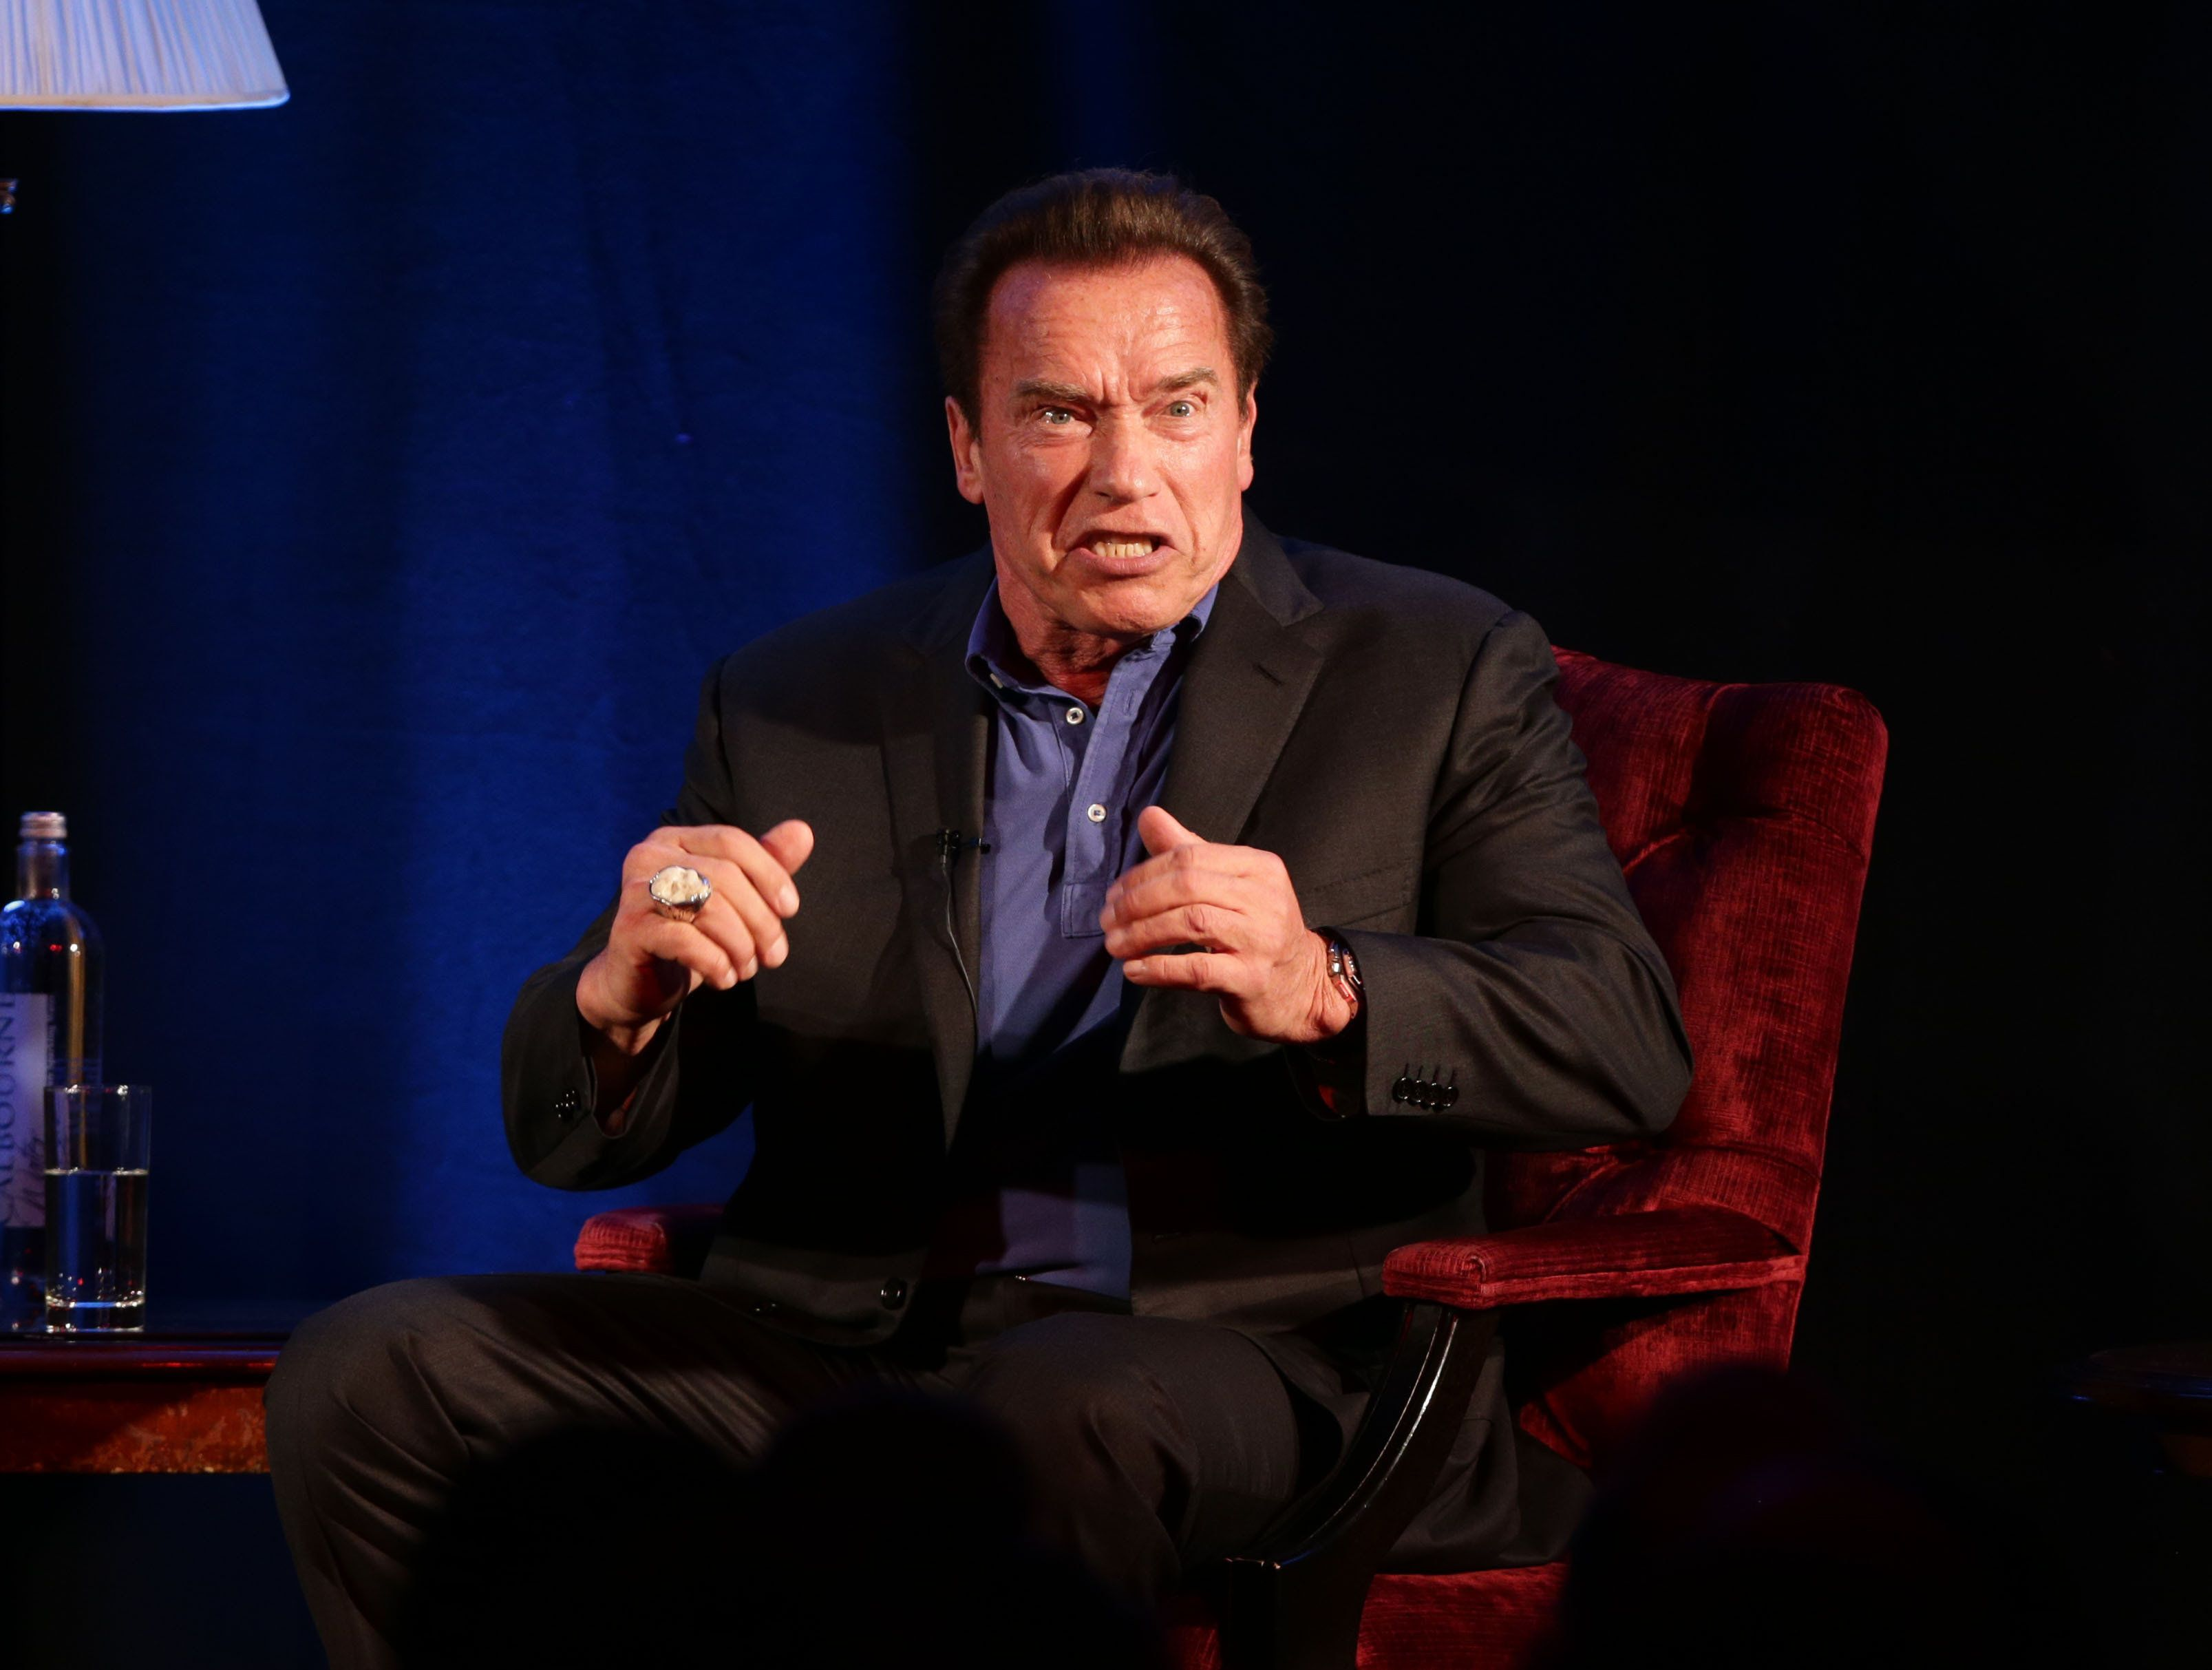 Arnold Schwarzenegger in conversation with host Jonathan Ross during 'An Evening with Arnold Schwarzenegger', at the Lancaster London Hotel in London.